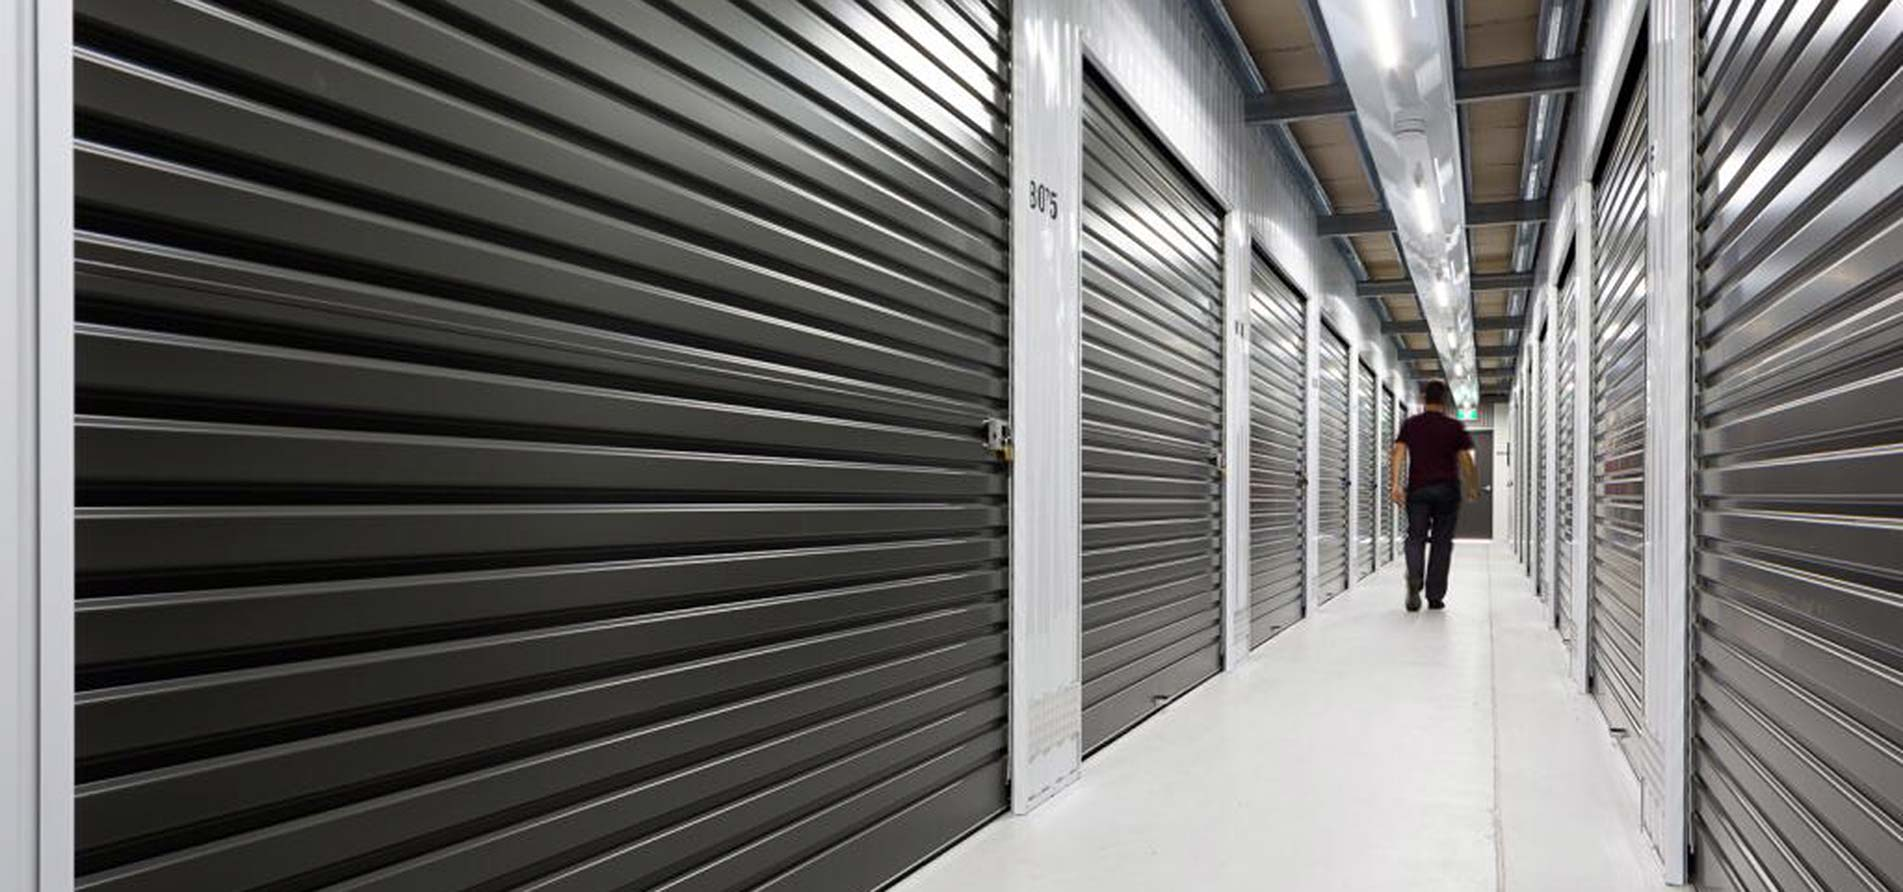 Storage Unit Cost Self Storage Units Charmhaven Central Coast Storaway